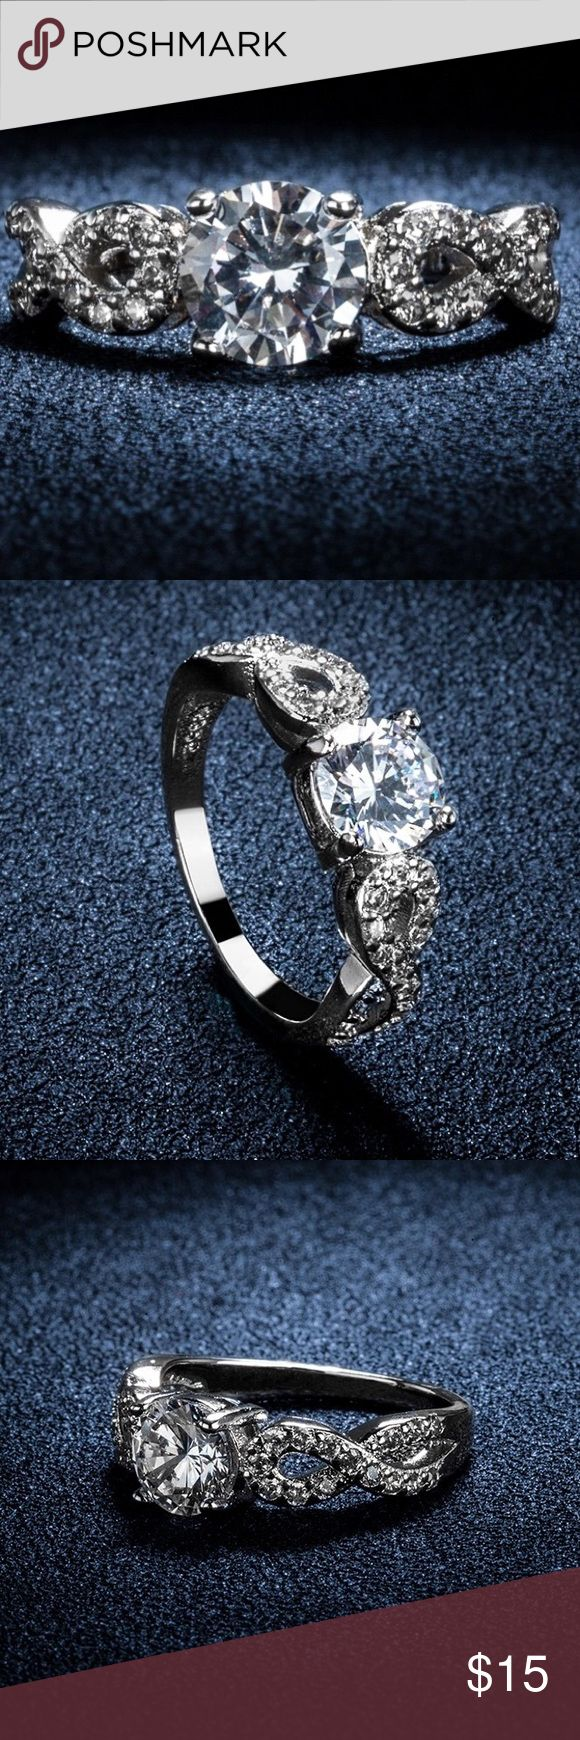 Stylish ring size 8! Big heartstone 3 Carat AAA cz diamond jewelry engagement wedding rings For women white gold plated! Occasion:Daily Wear,Wedding,Party,Engagement •30% silver • with a small box  Price is firm! Happy shopping y'all! Jewelry Rings